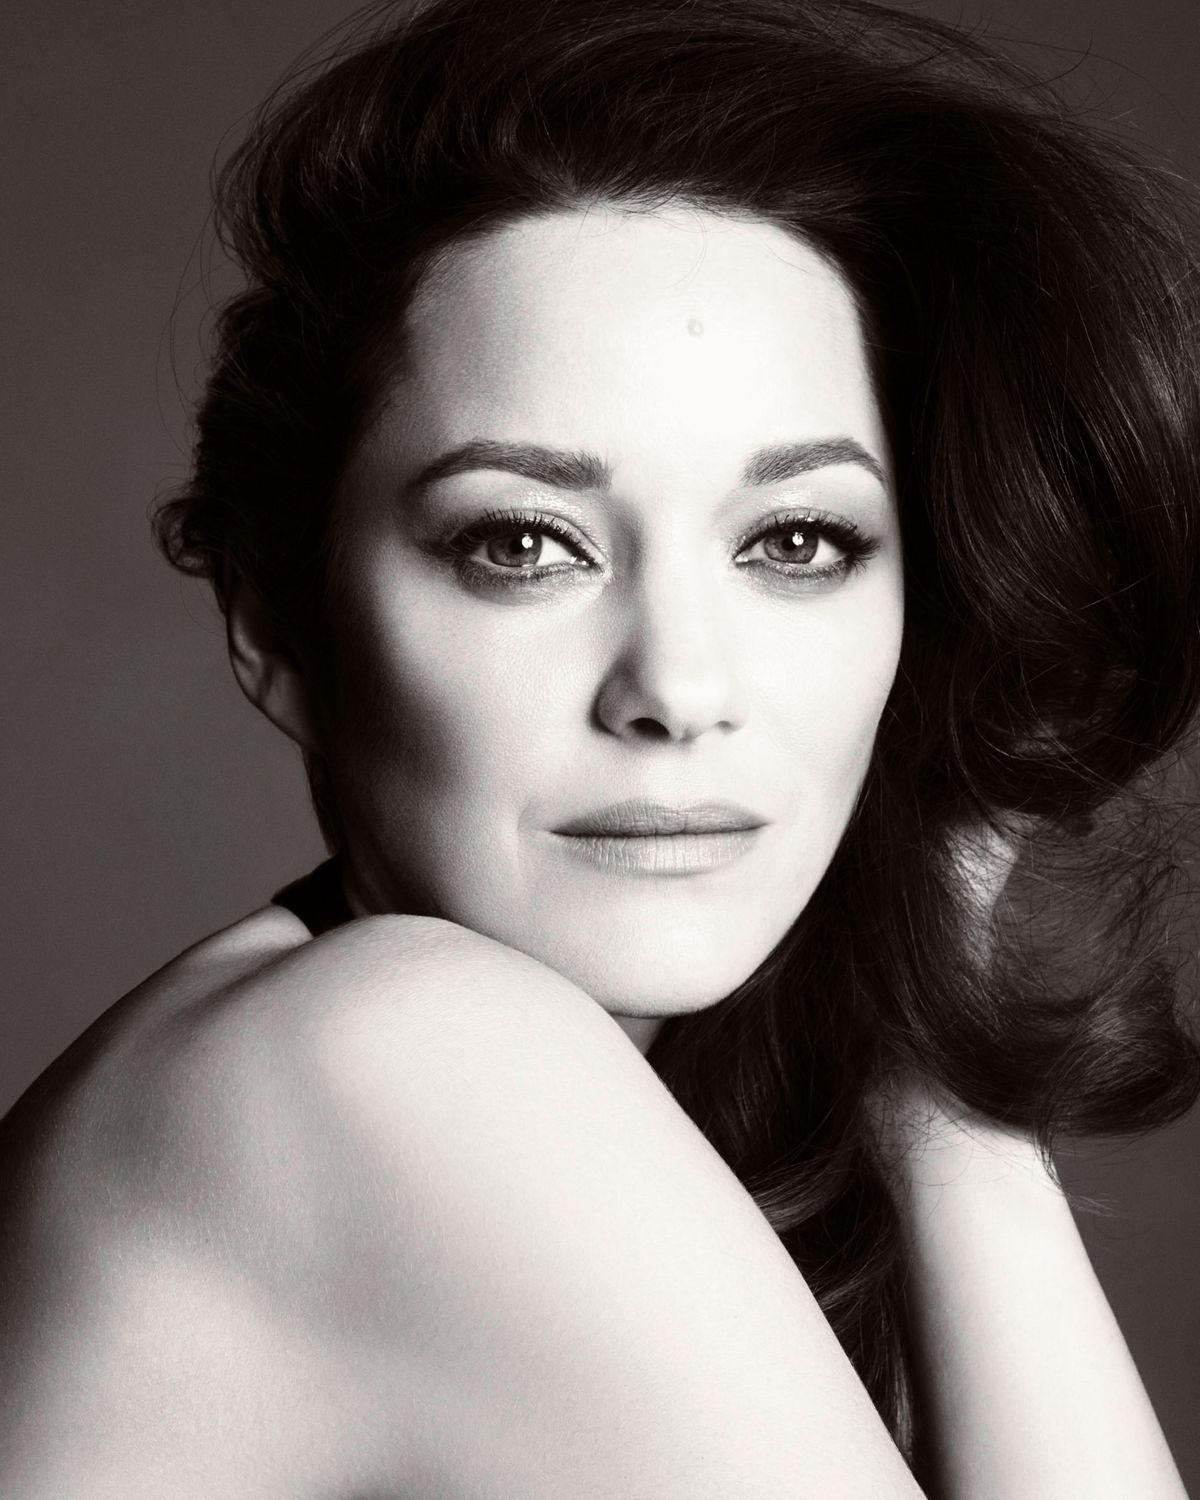 Marion Cotillard Is The New Face Of Chanel No 5